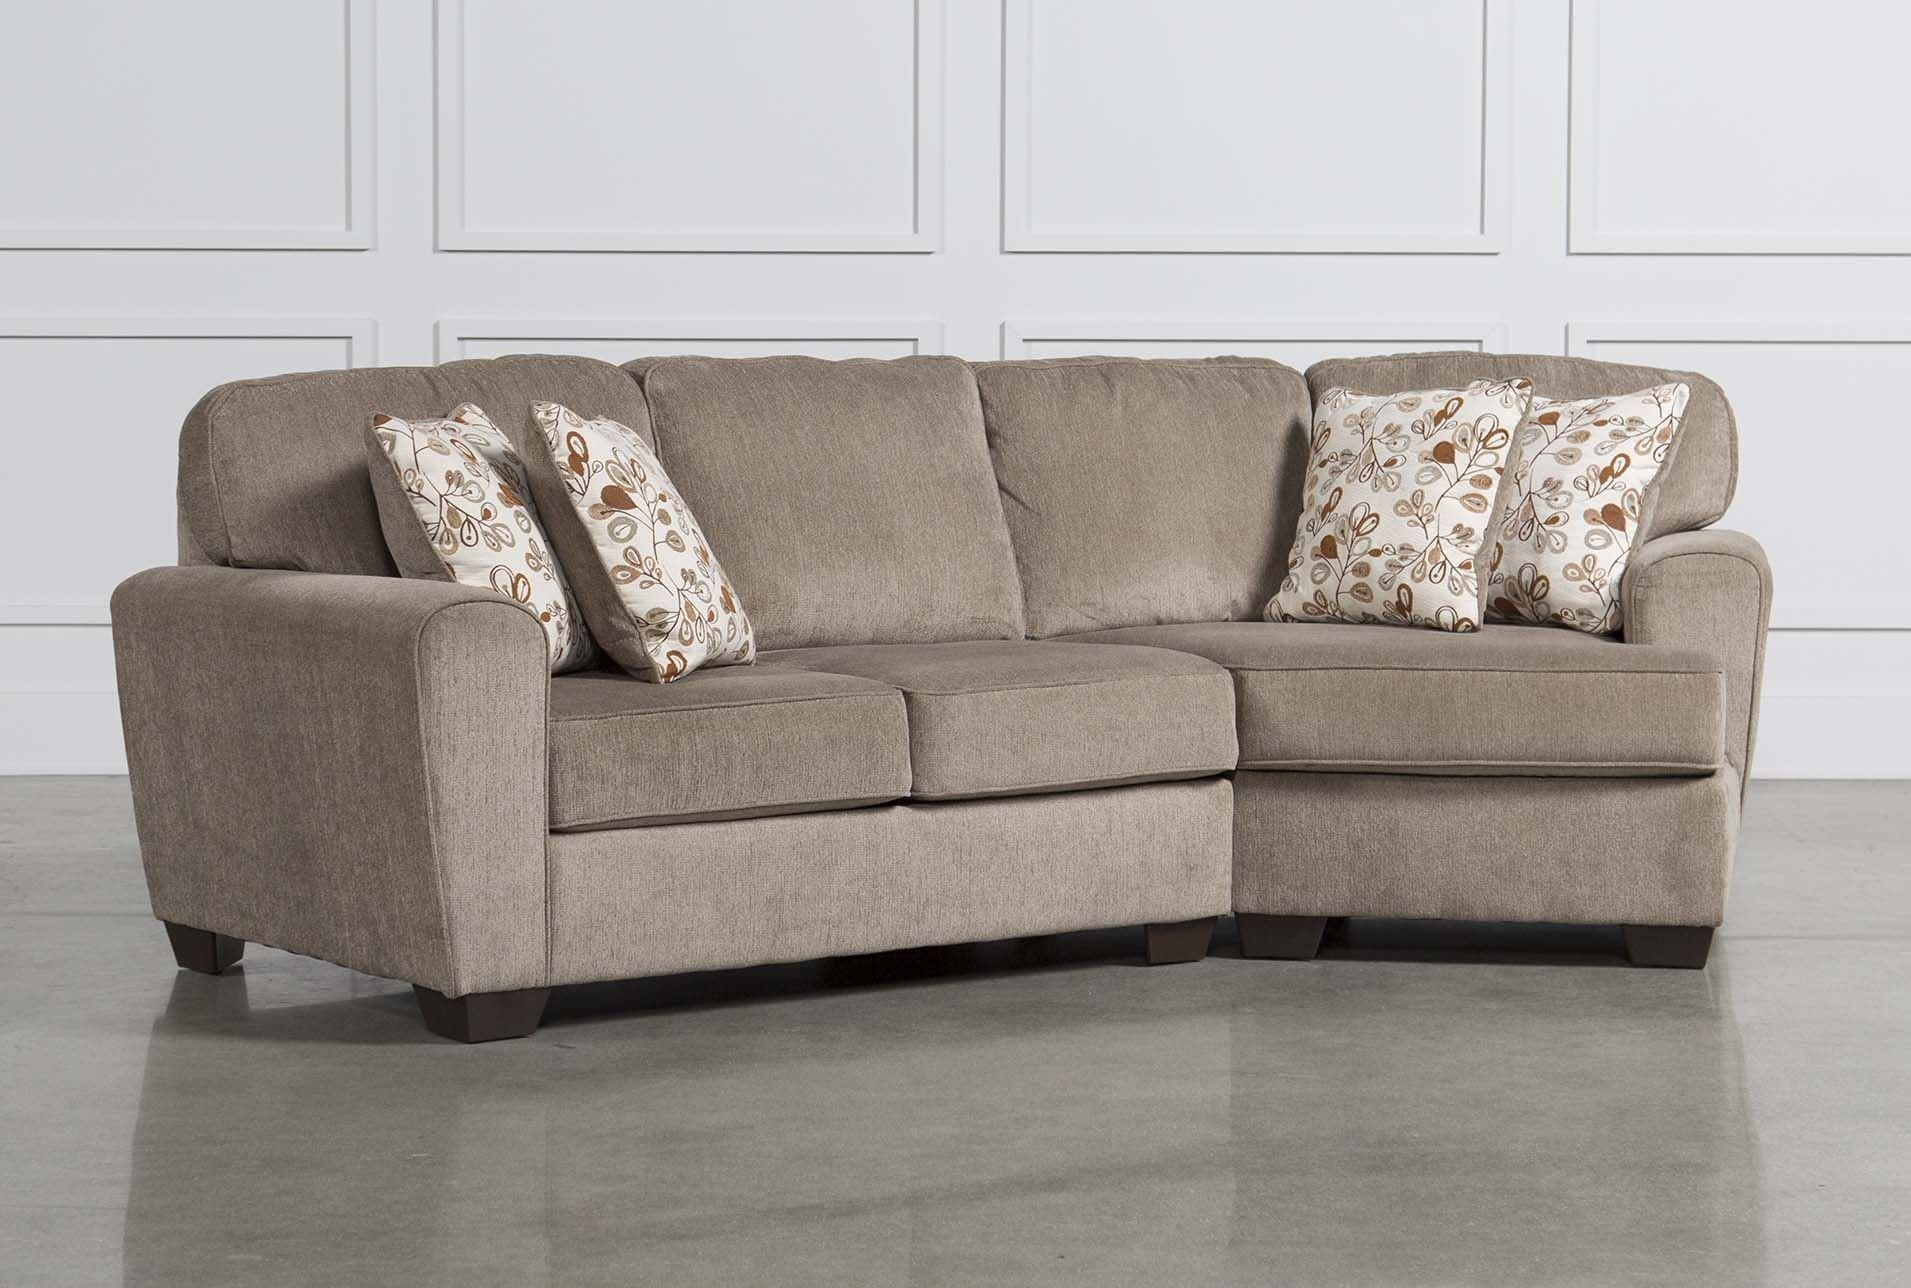 sofas for less fabric sofa with chaise 15 best ideas eco friendly sectional